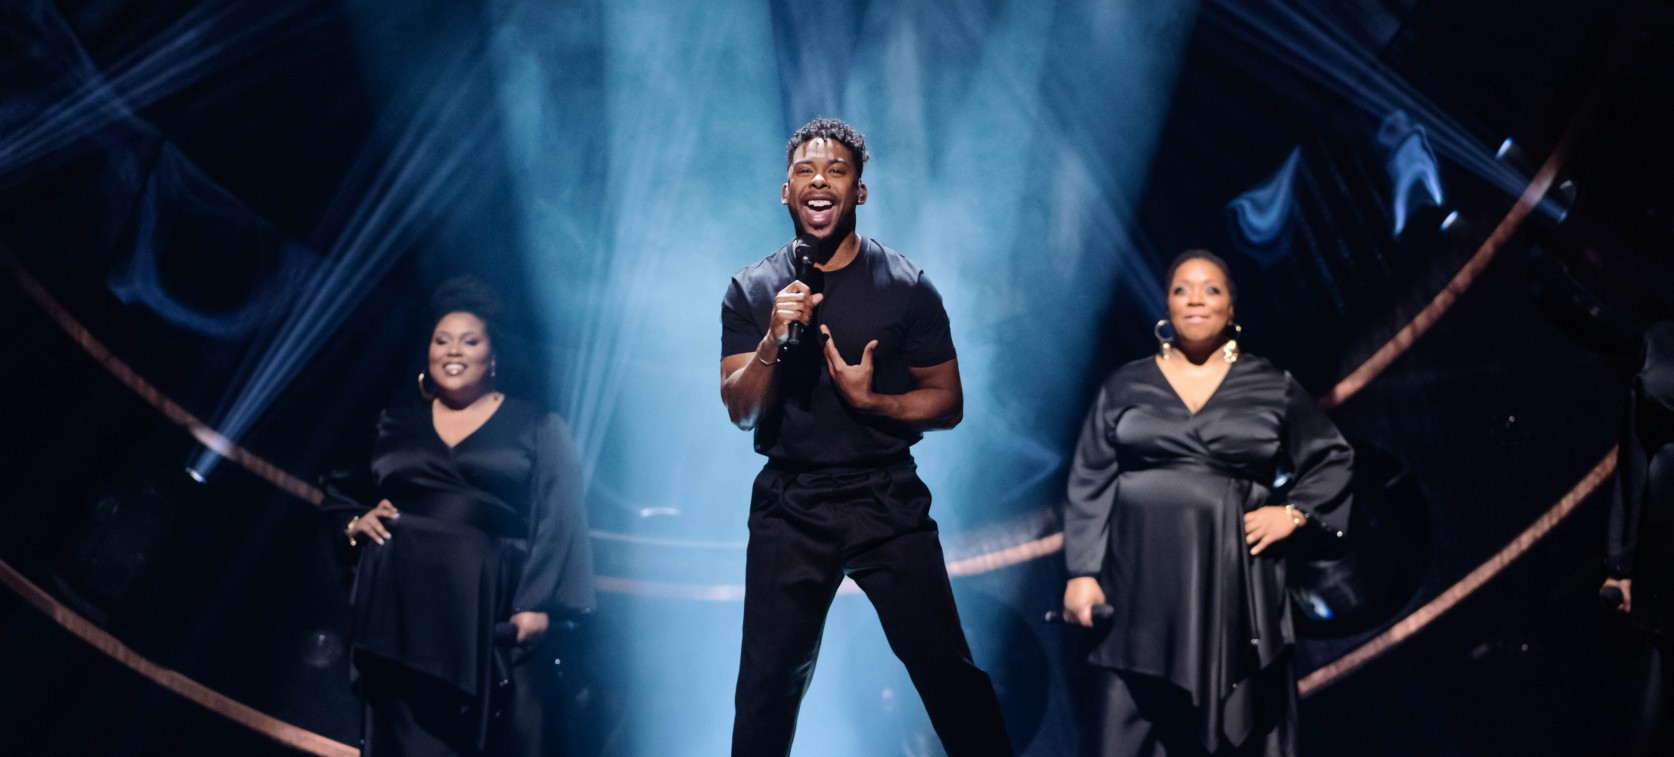 Sweden: SVT to kick off Melodifestivalen 2020 song submissions on August 26th